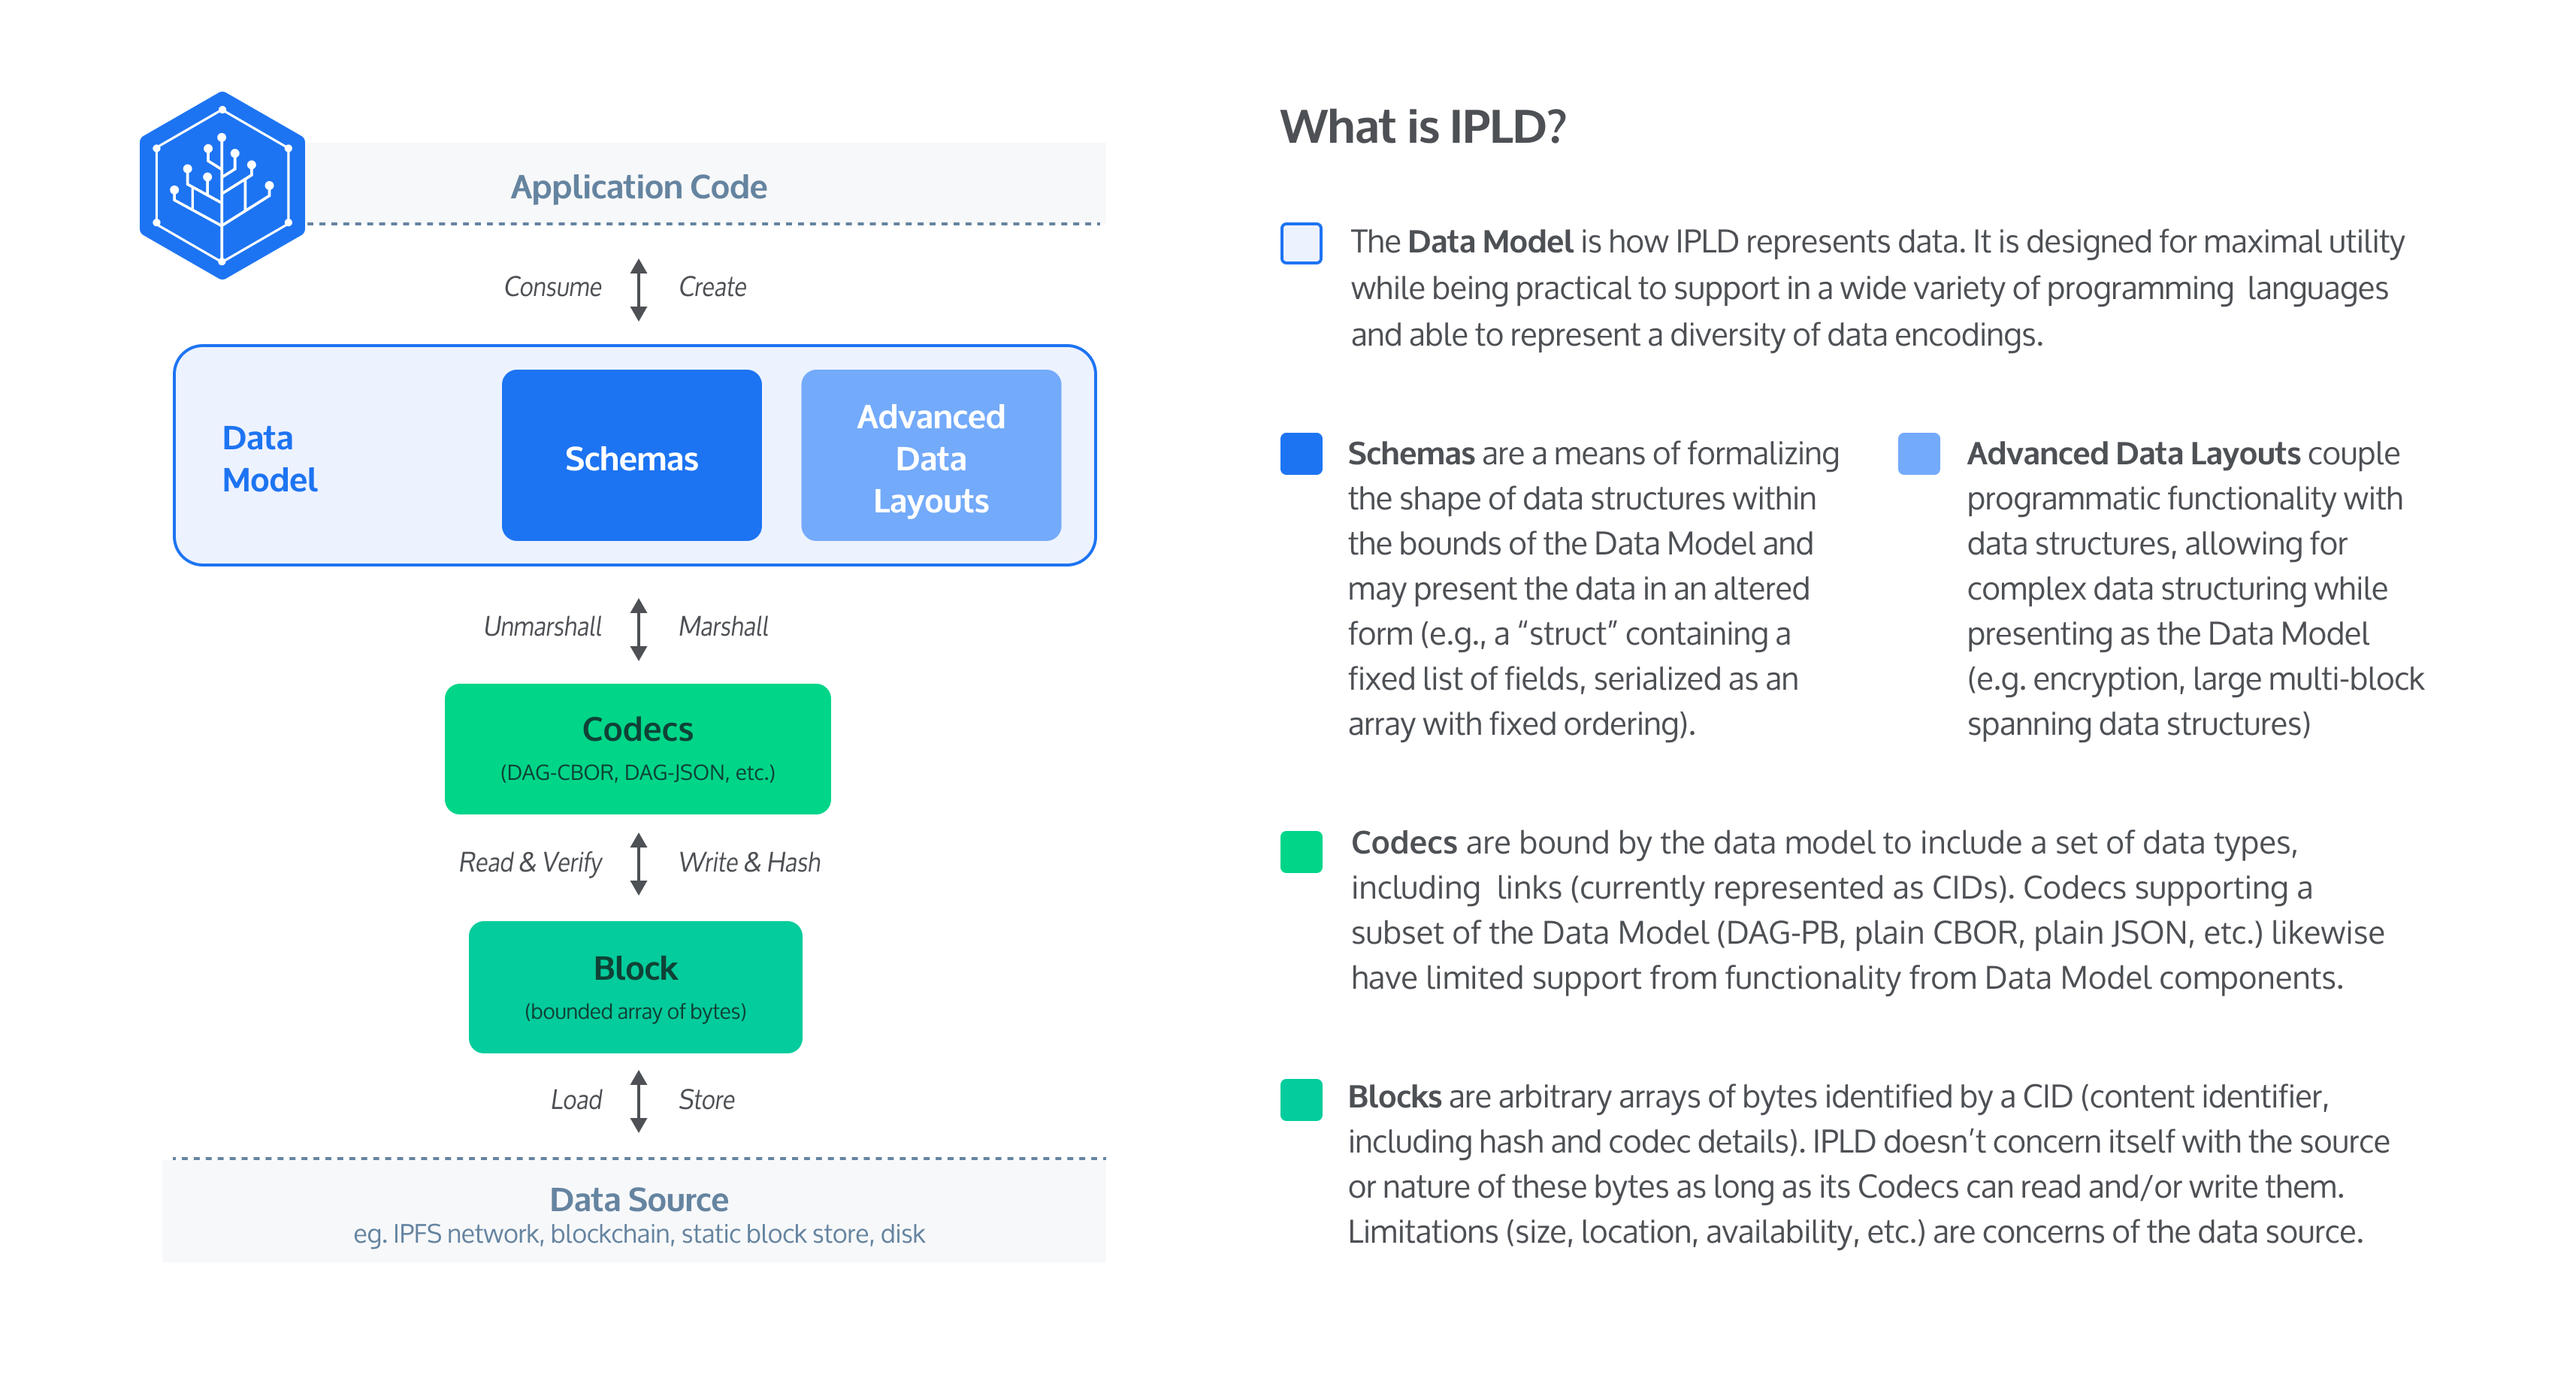 What is IPLD?